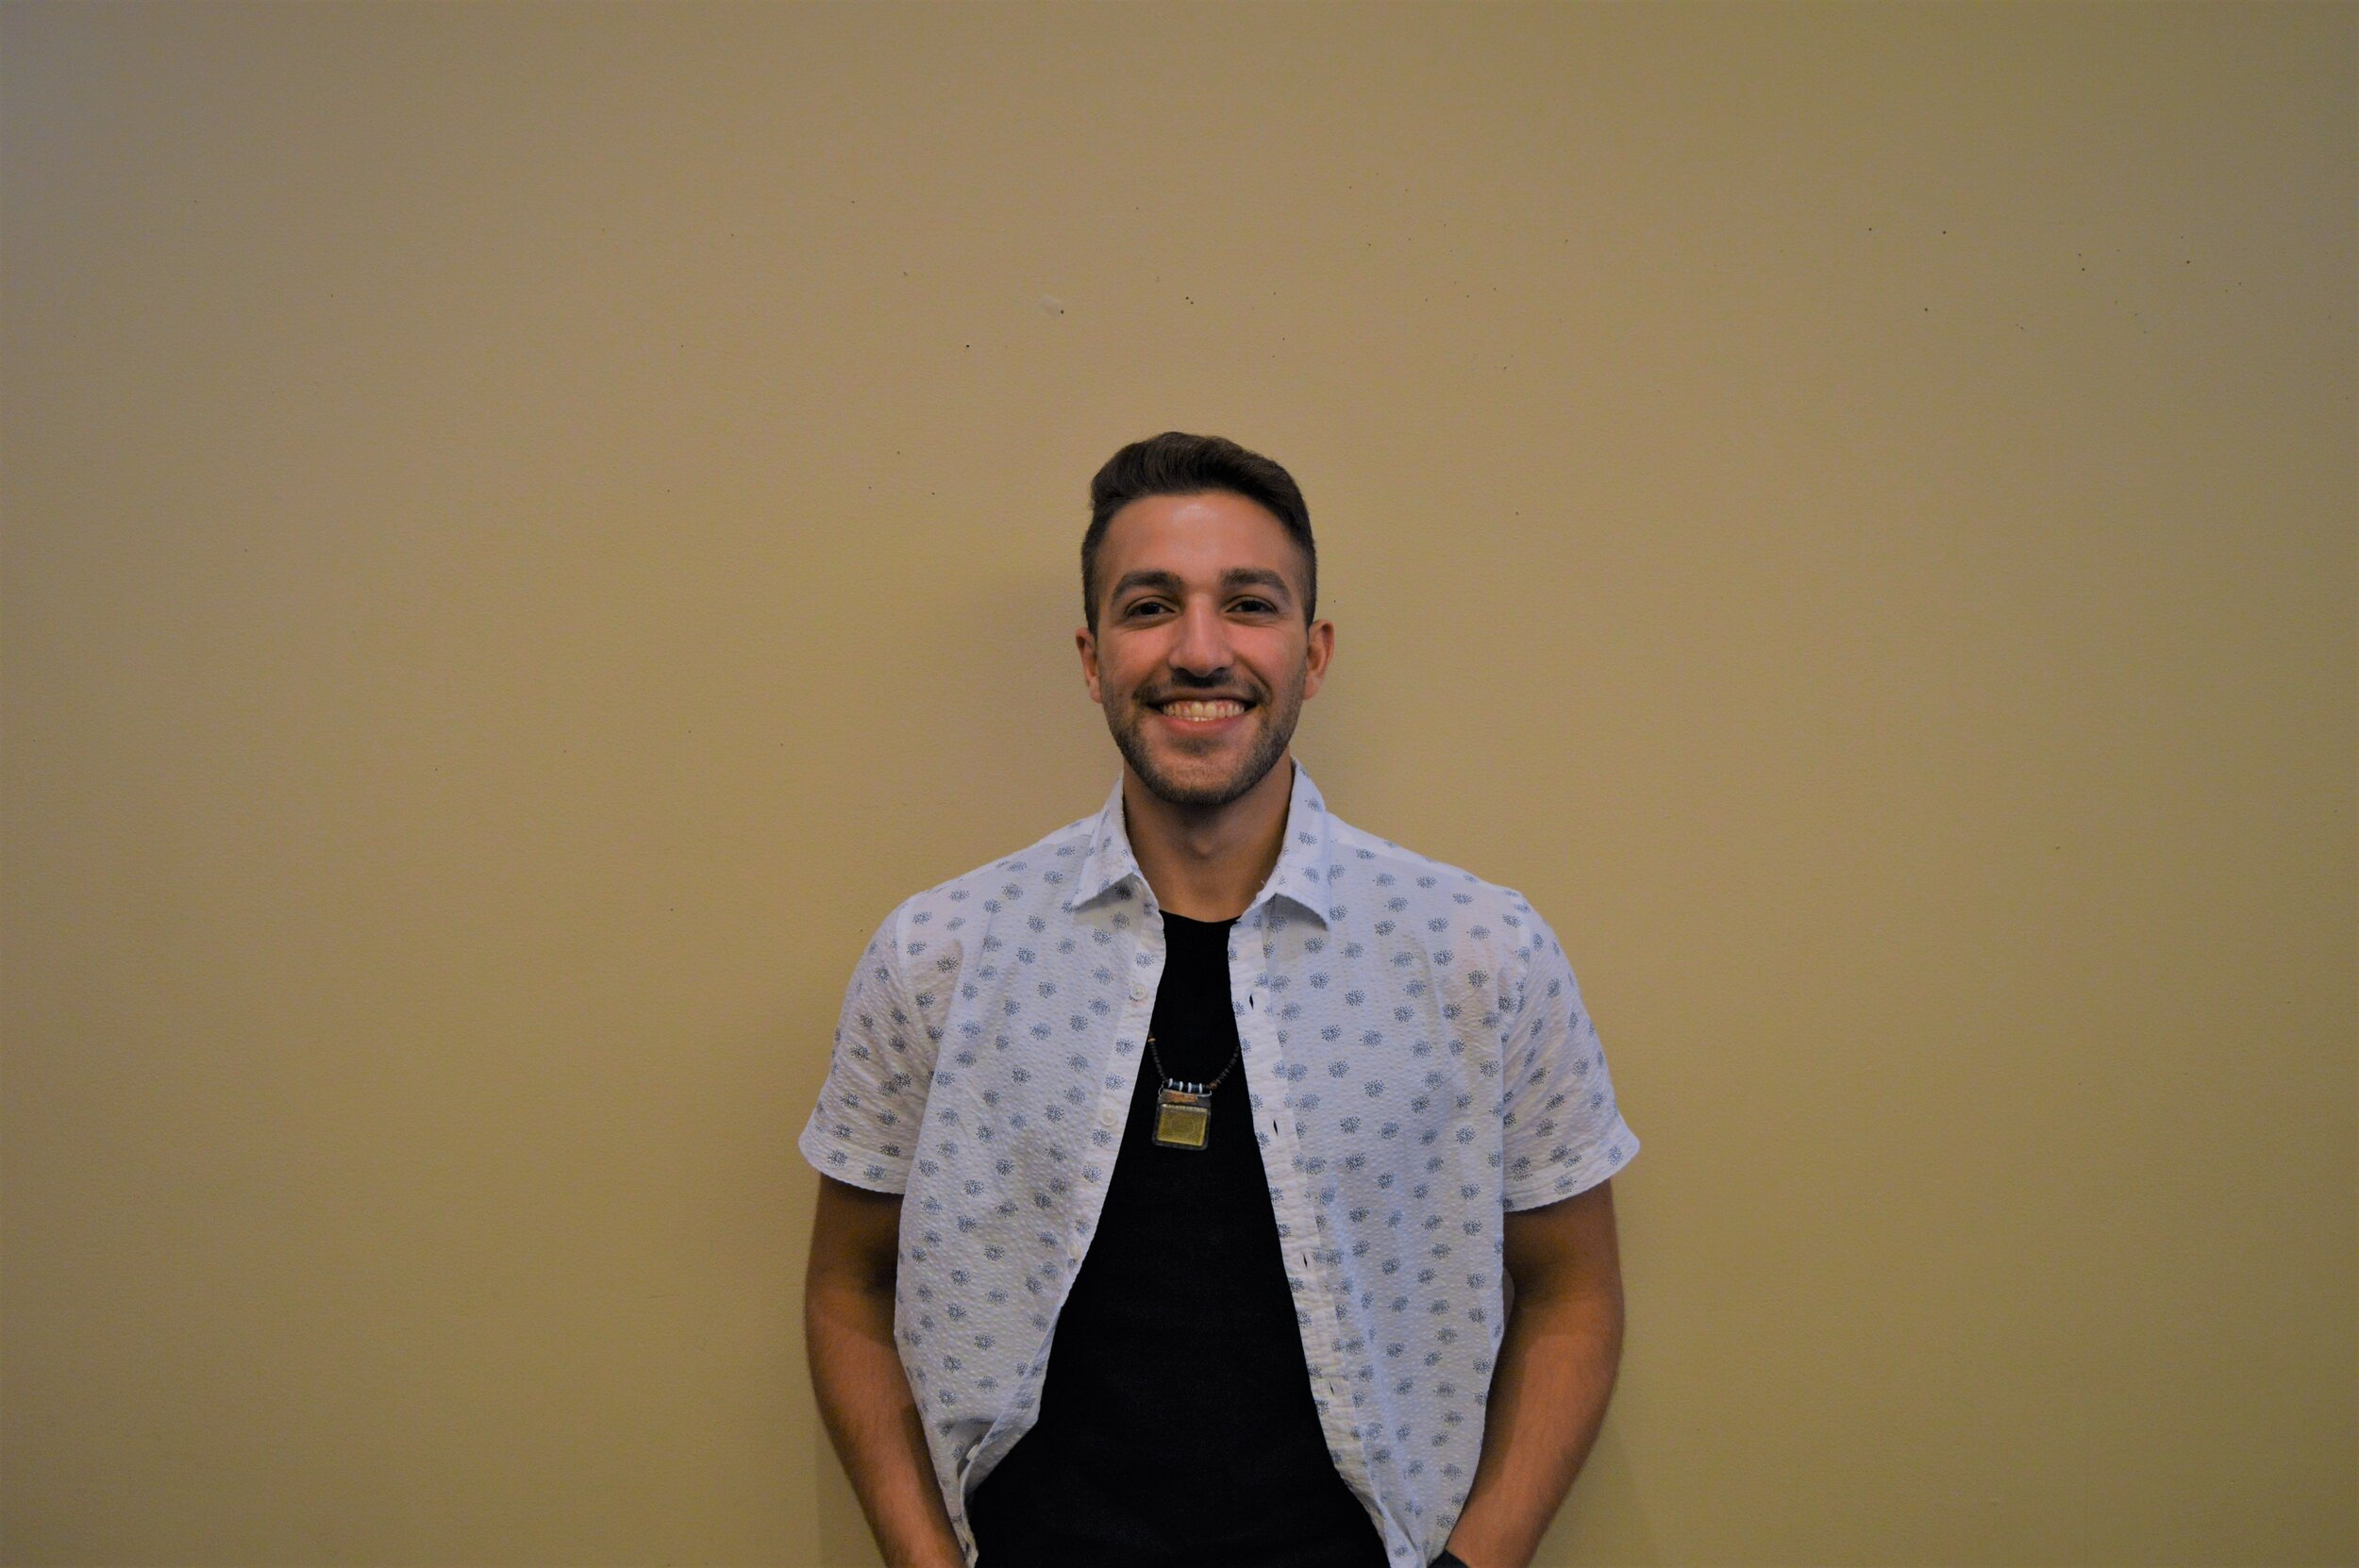 Riad Hassan Abul-Khoudoud - Class and Major: Biology 21UTSG Position: Associate Chief JusticeEmail: riad.abulkhoudoud@rockets.utoledo.eduBiography: Go to dental school, specialize as either an orthodontist or maxillofacial sergeonUTSG Committees: SJCCampus Involvement: BBB, BUGS, Esports Club, Alpha phi omega, Alpha Elpsilon Delta, Pre-Dental Student Organization, MENAA, and Levis LeadershipOn Campus Goals: I would like to see a reversion of the unlimited meal plan where students were allowed to swipe other students in without having to worry about the number of guests swiped they have per semesterFavorite Color: Yellow